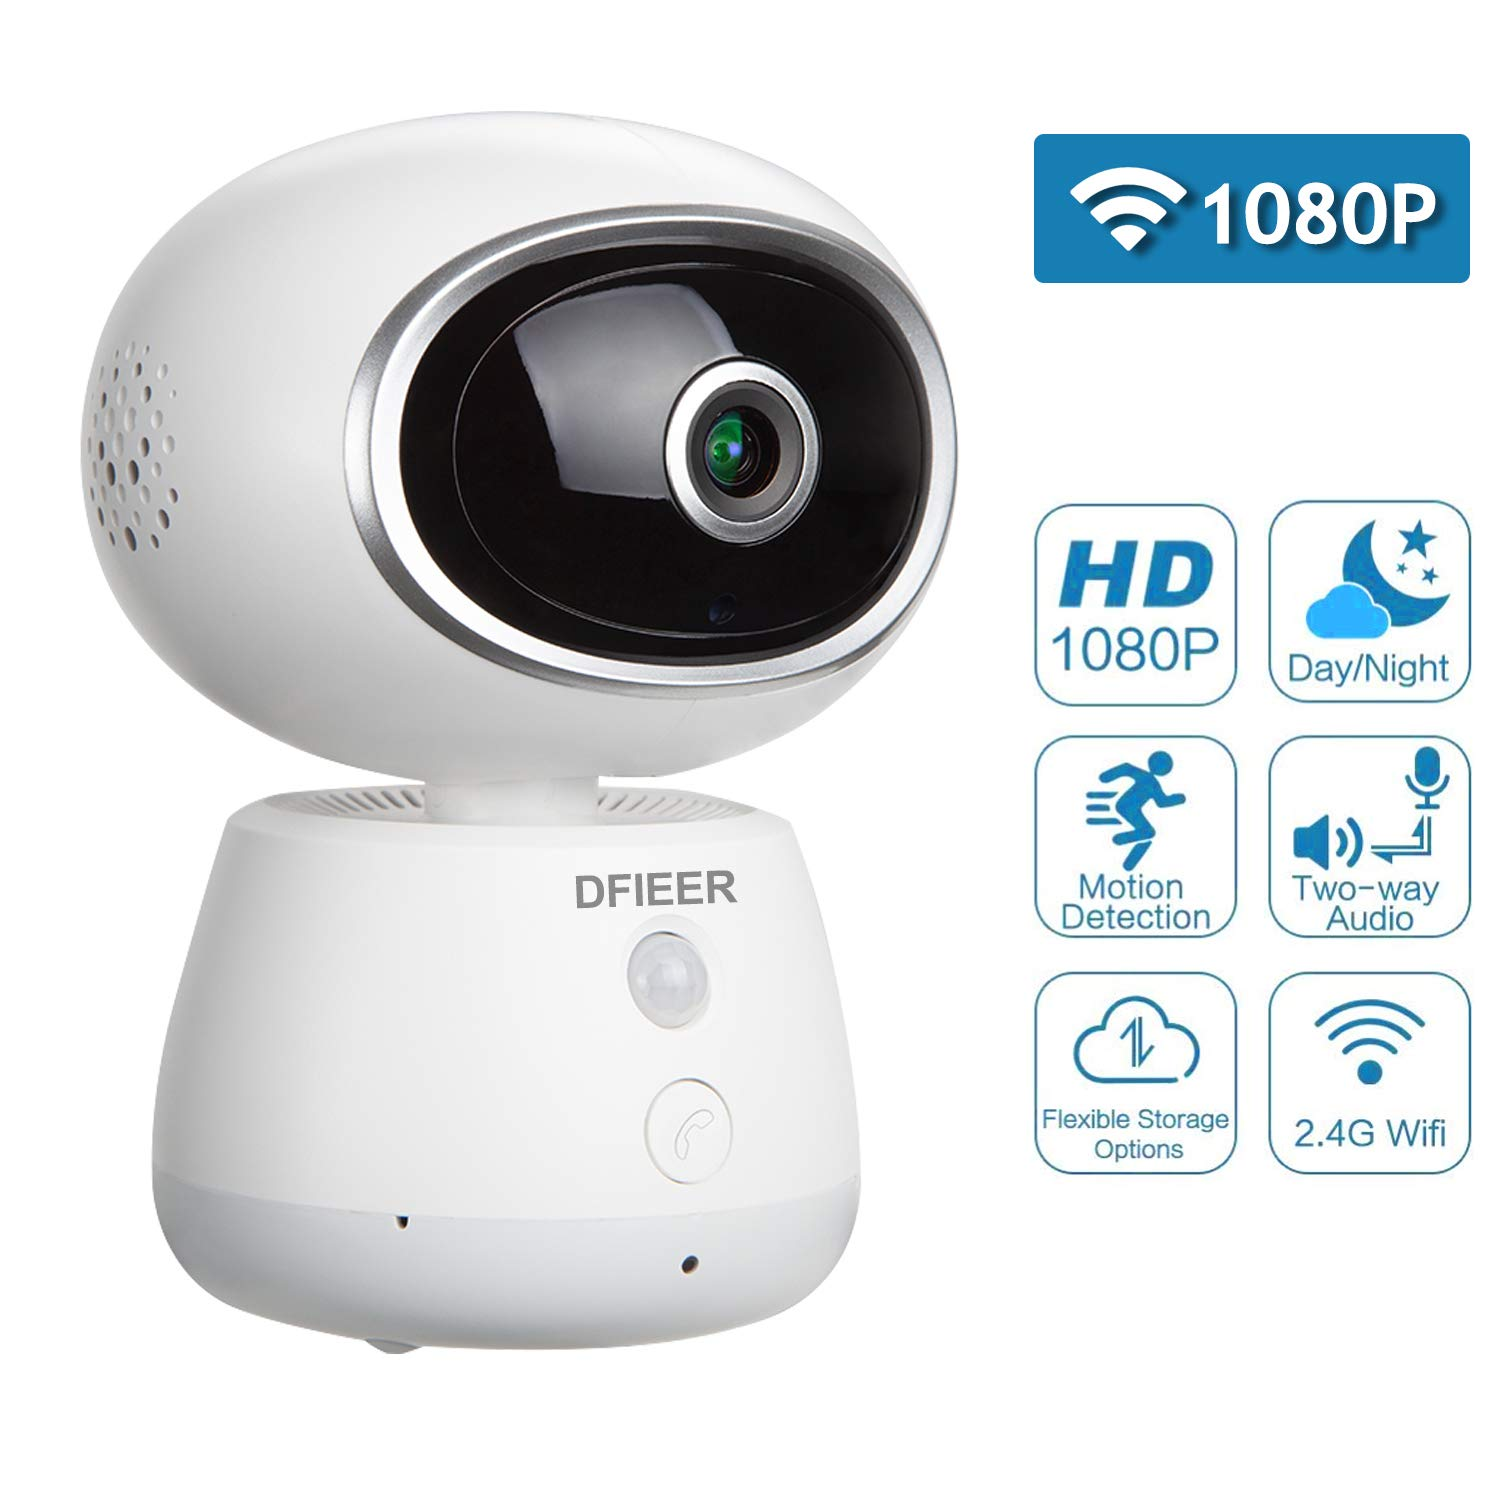 1080P HD Baby Pet Nanny Monitor, 360 Eyes Panoramic Remote Monitor Wireless WiFi IP Camera with Pan Tilt, Night Vision Indoor Home Security Cam with Motion Detection,Two-Way Audio, Cloud Storage